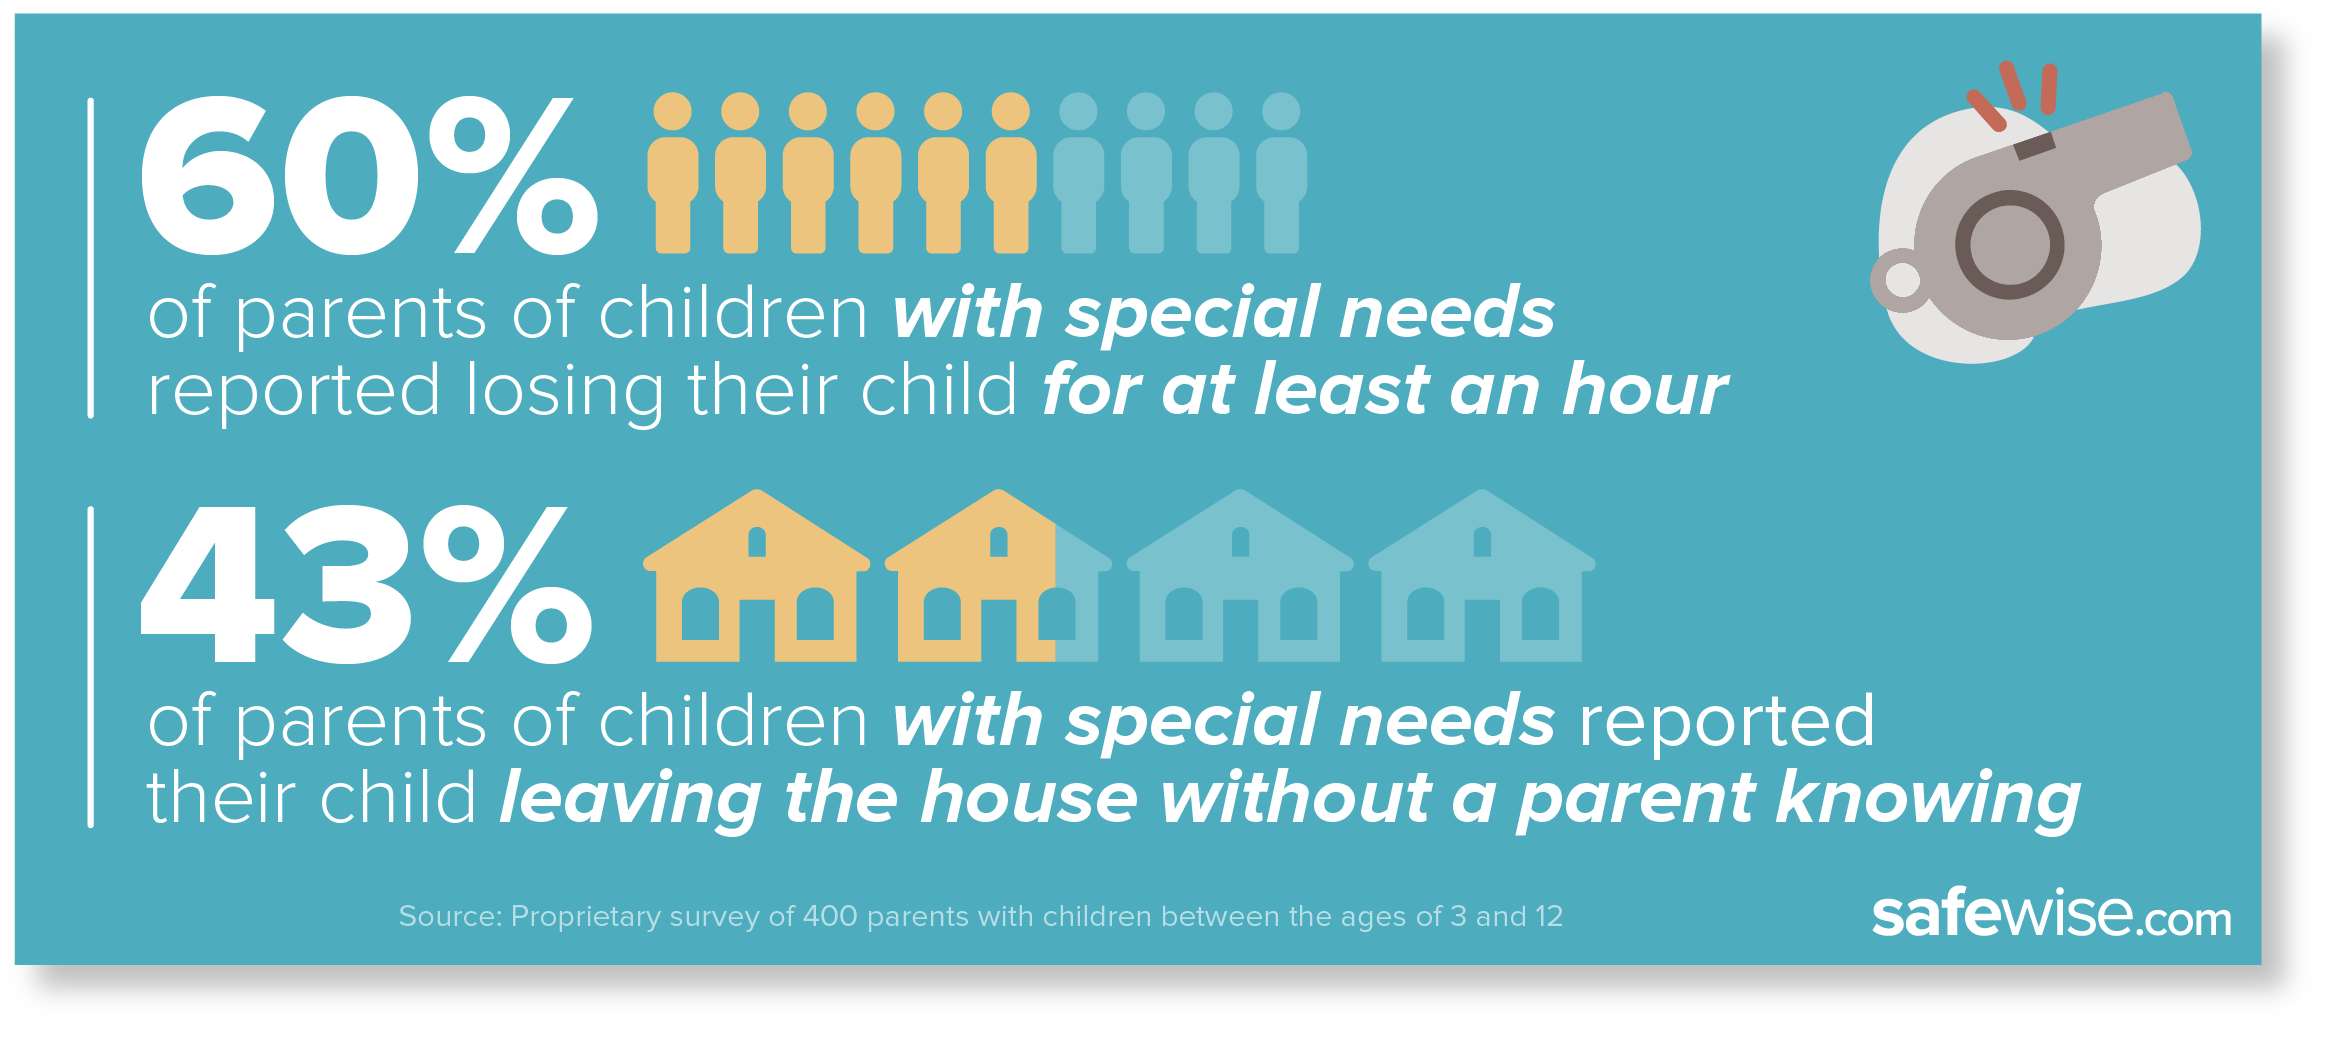 statistics from survey of parents with special needs children